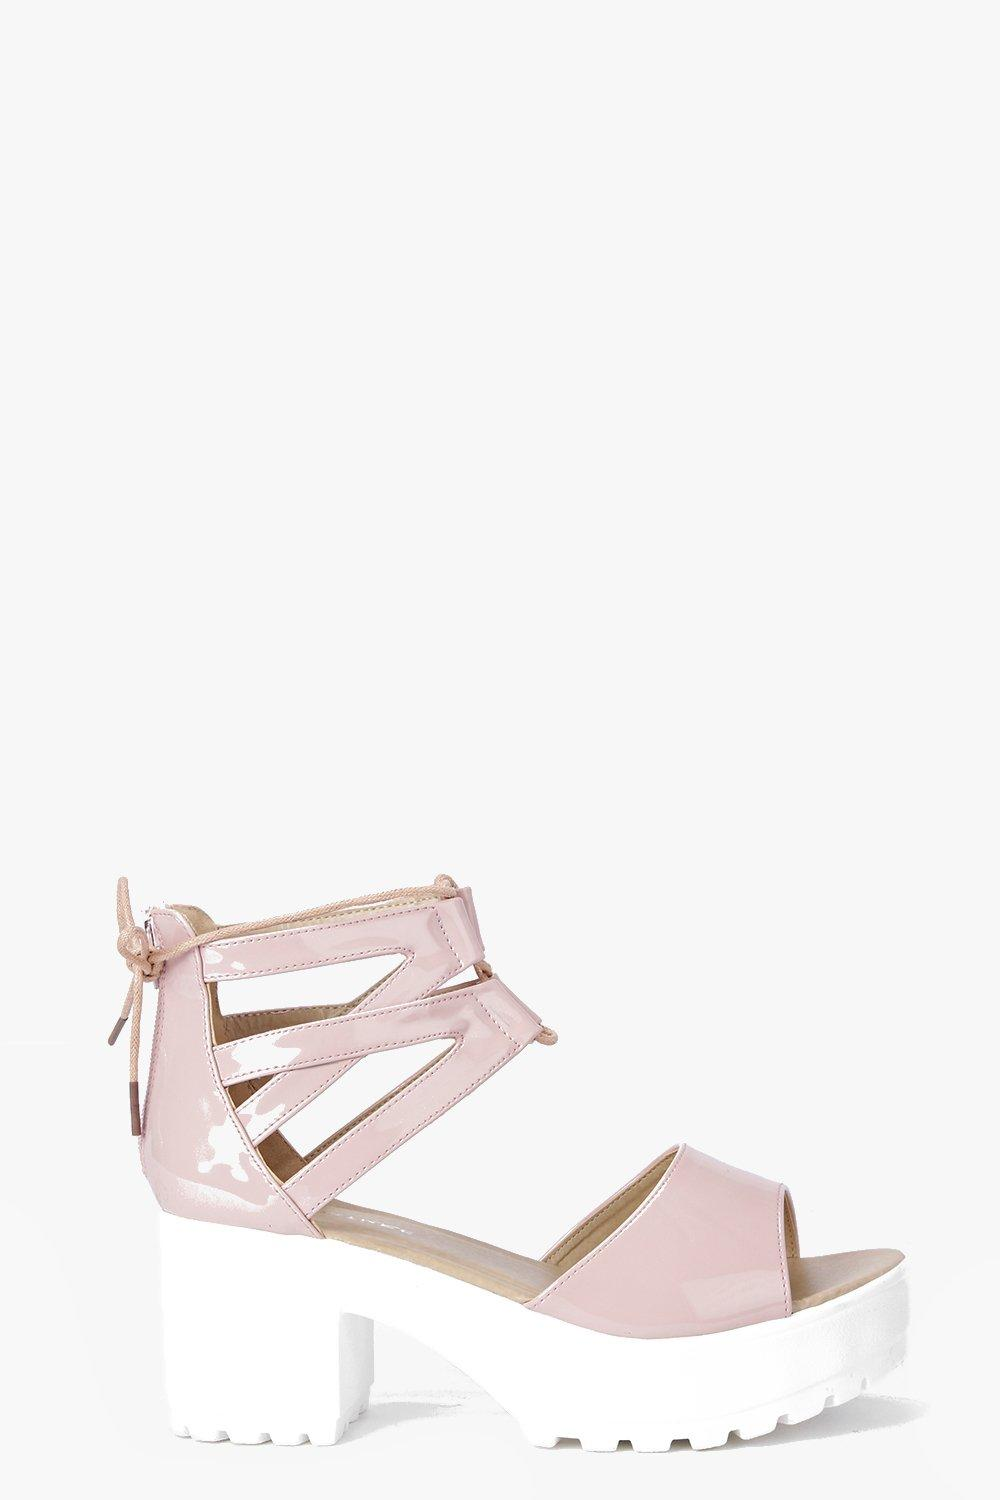 Tia Lace Up Two Part Cleated Sandal